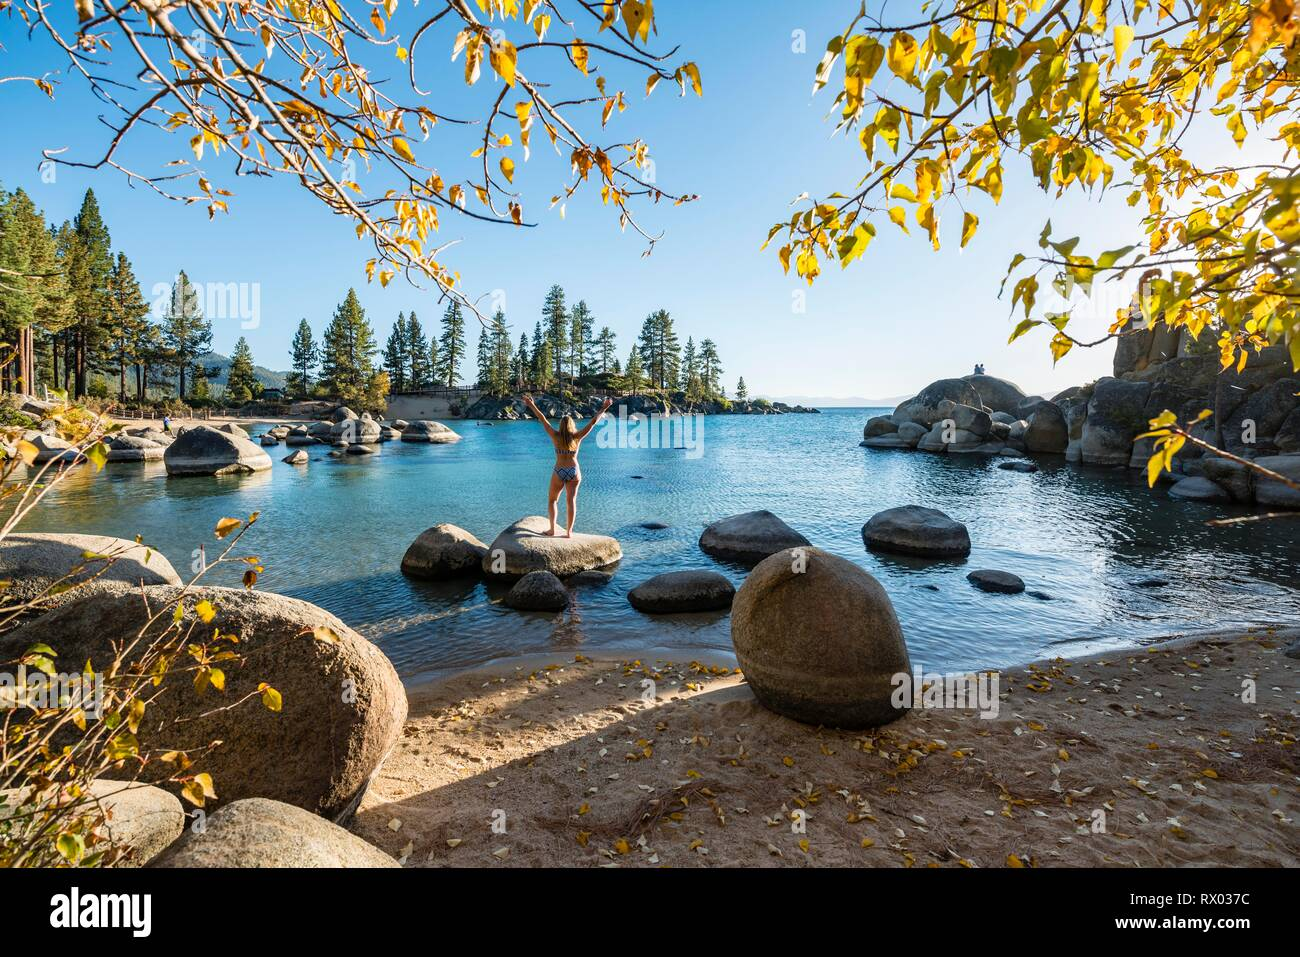 Young woman in bikini standing on a round stone in the water, bay at lake Lake Tahoe, Sand Harbor State Park, shore, California - Stock Image